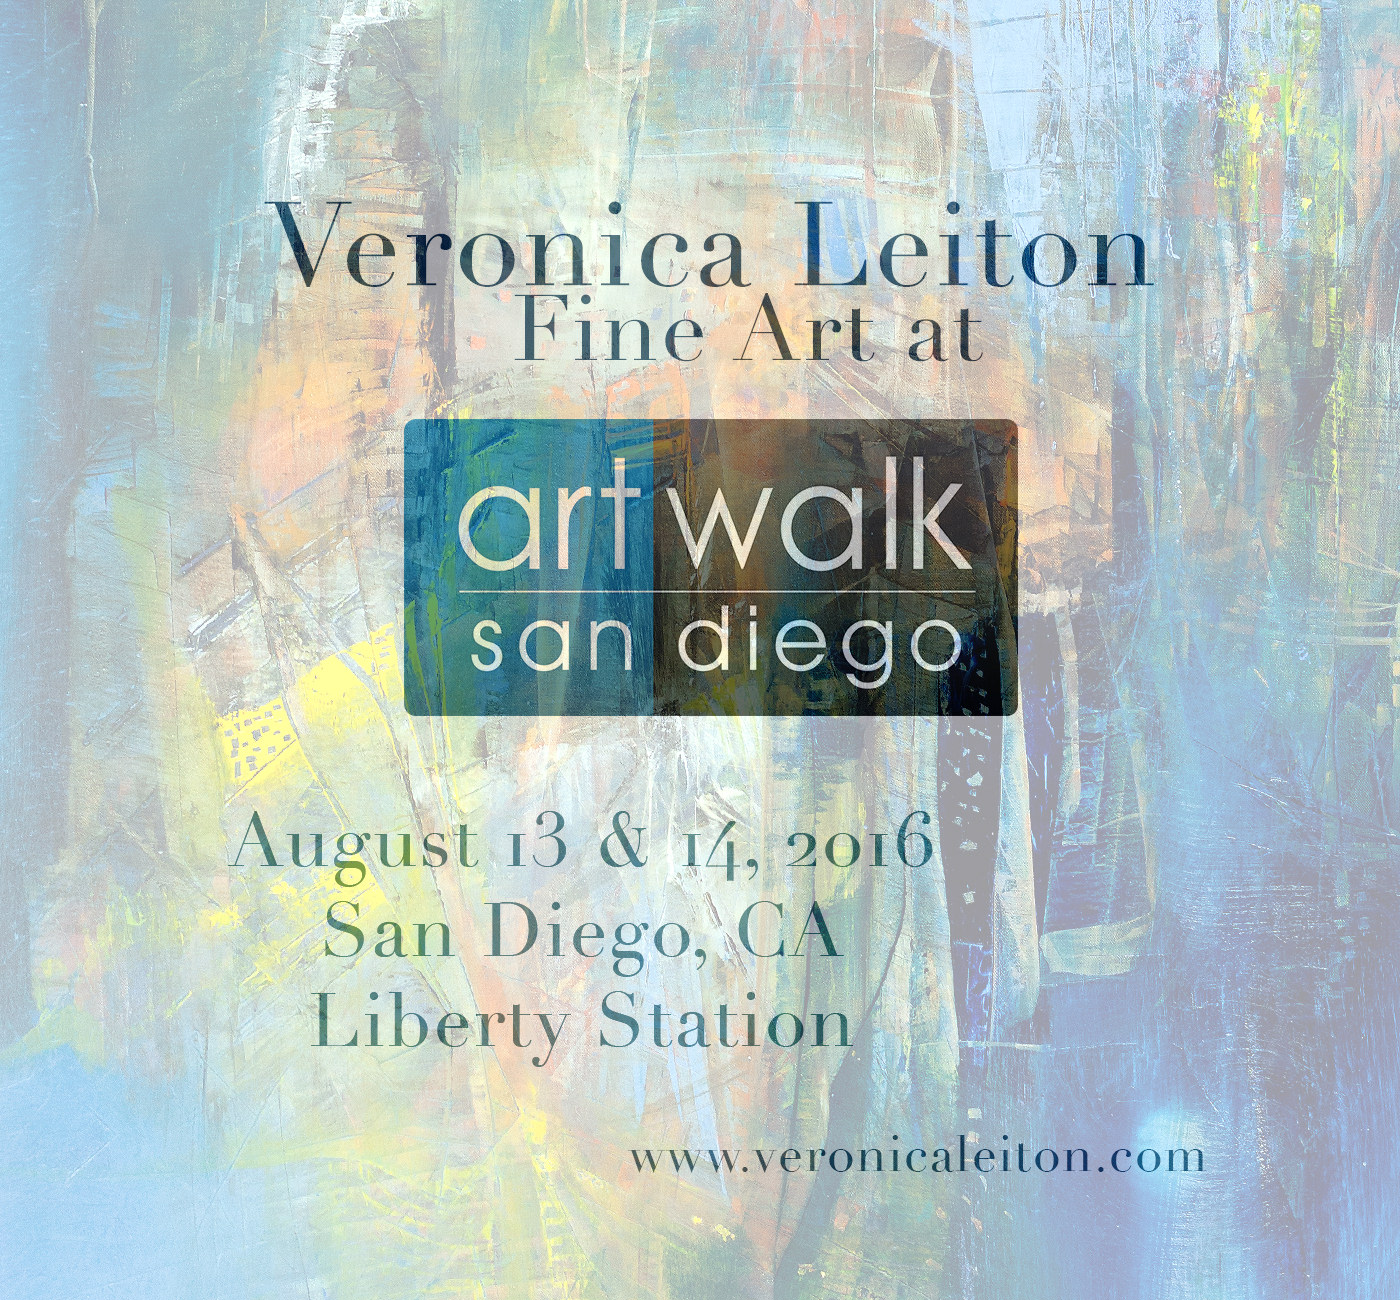 art-walk-exposition-in-san-diego-2016